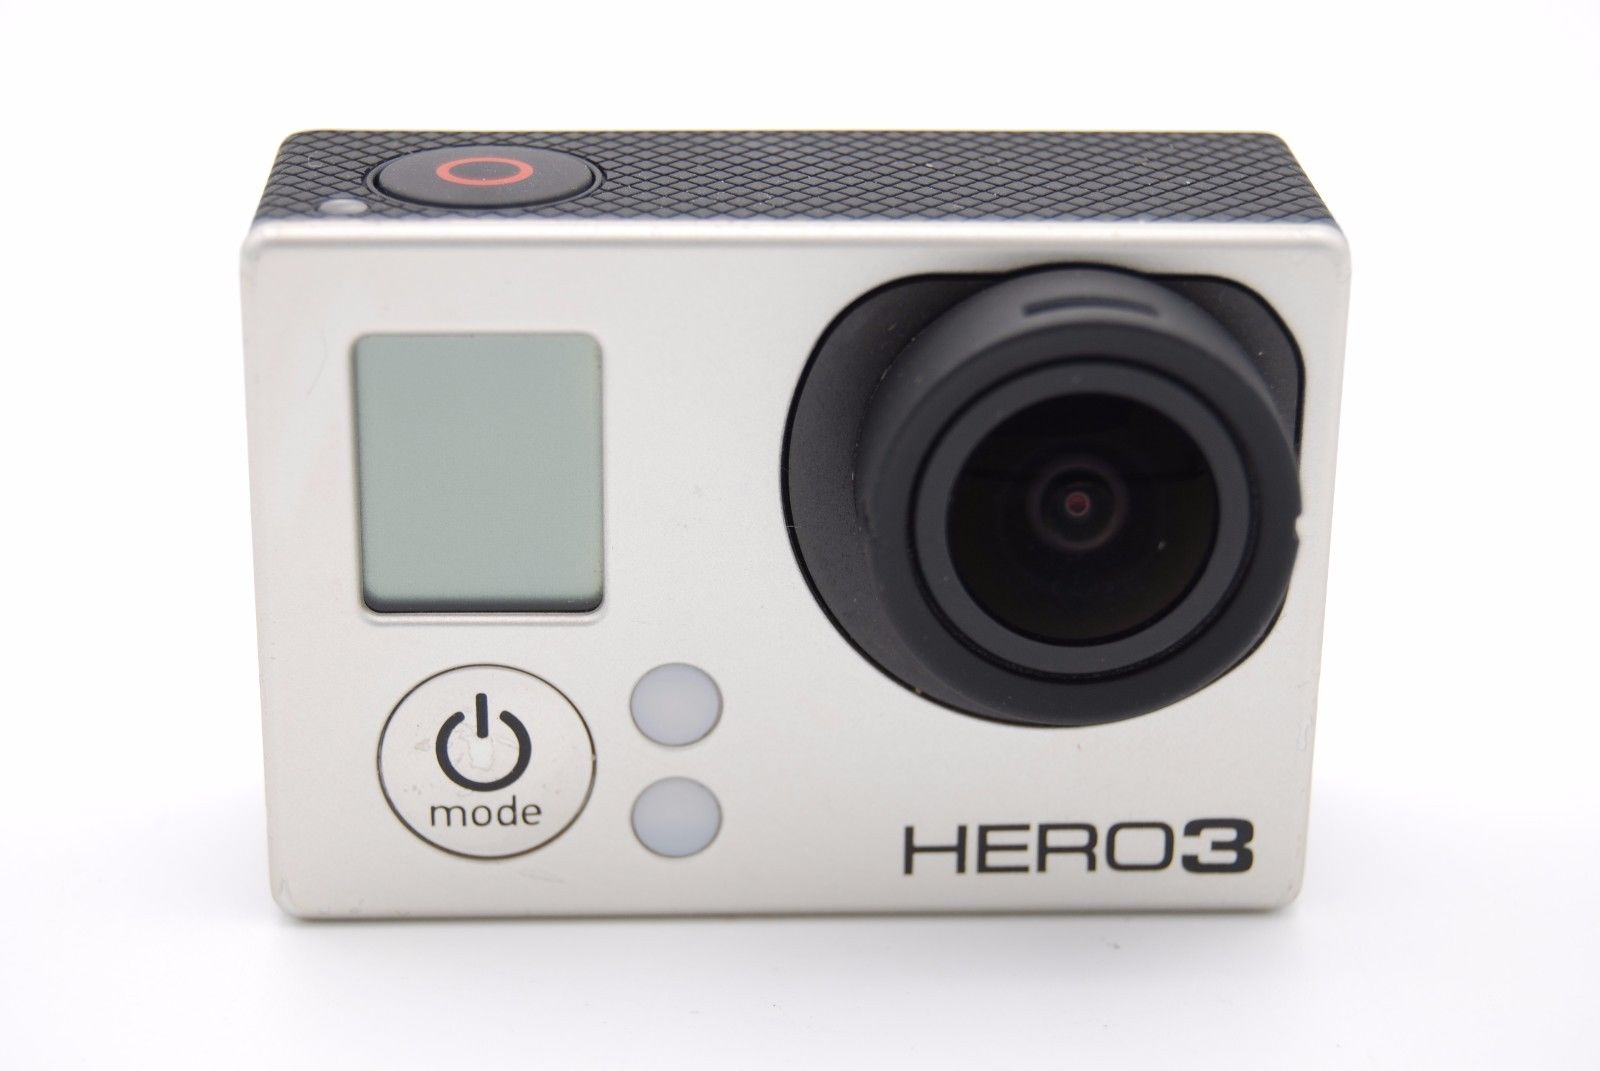 gopro hero 3 camera camcorder black edition with battery chdhx 301 black ebay. Black Bedroom Furniture Sets. Home Design Ideas